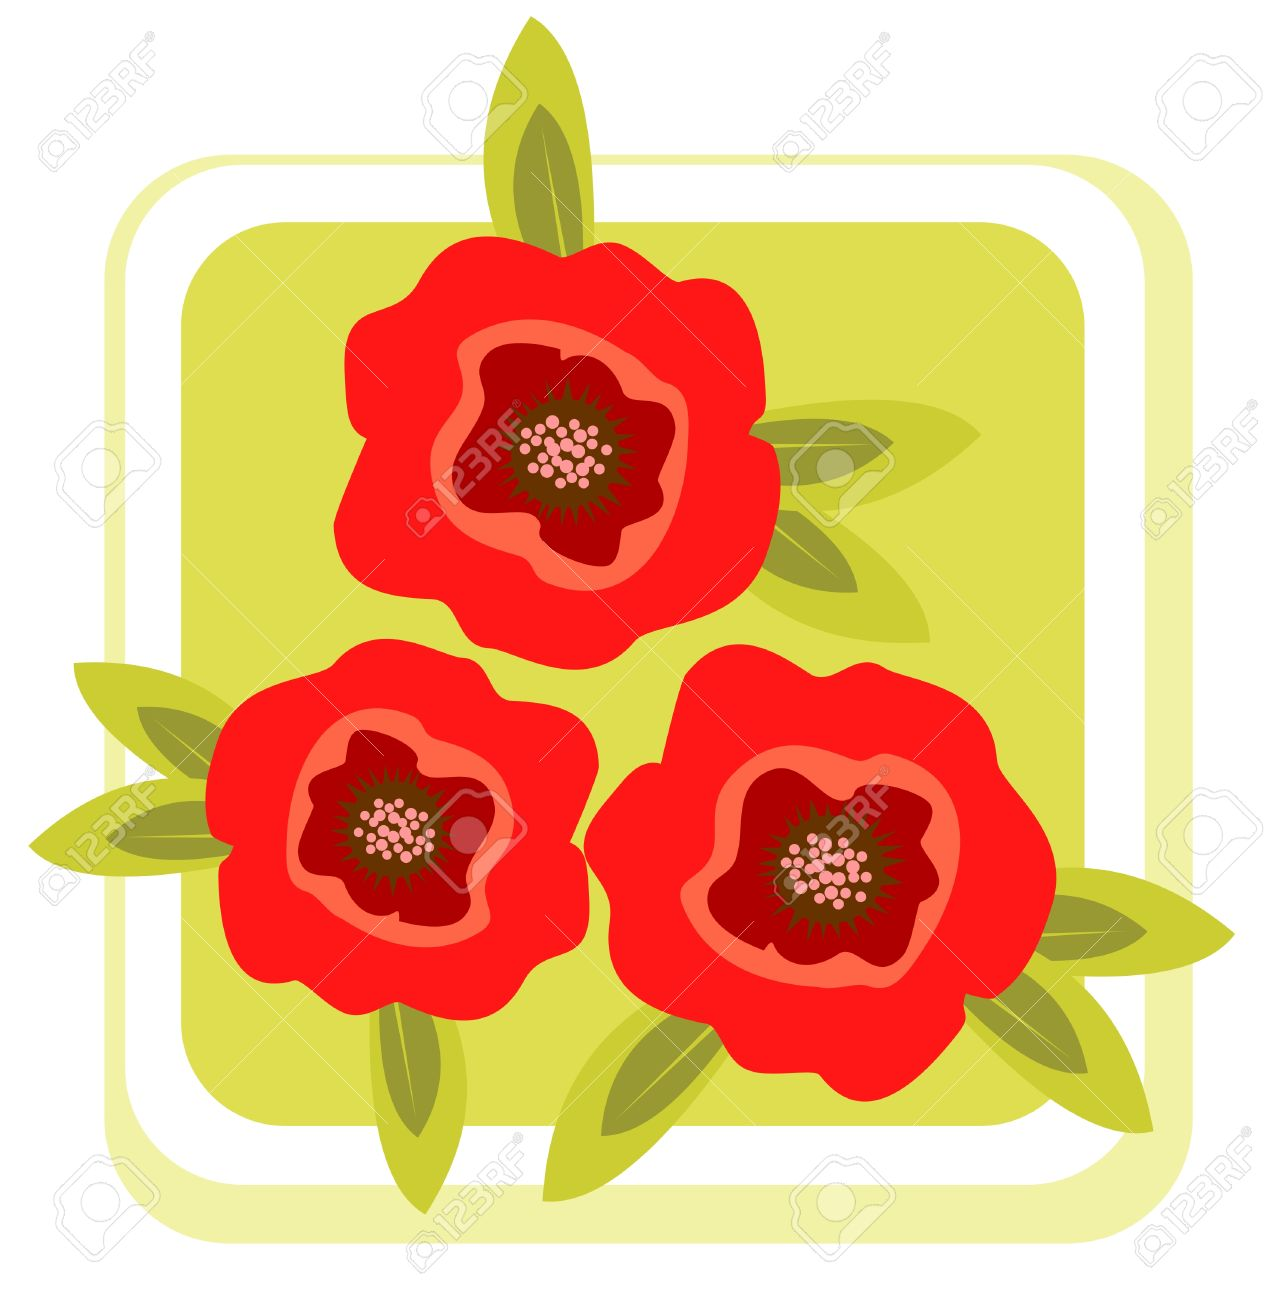 Cartoon Red Poppy Flowers On A Green Background Royalty Free